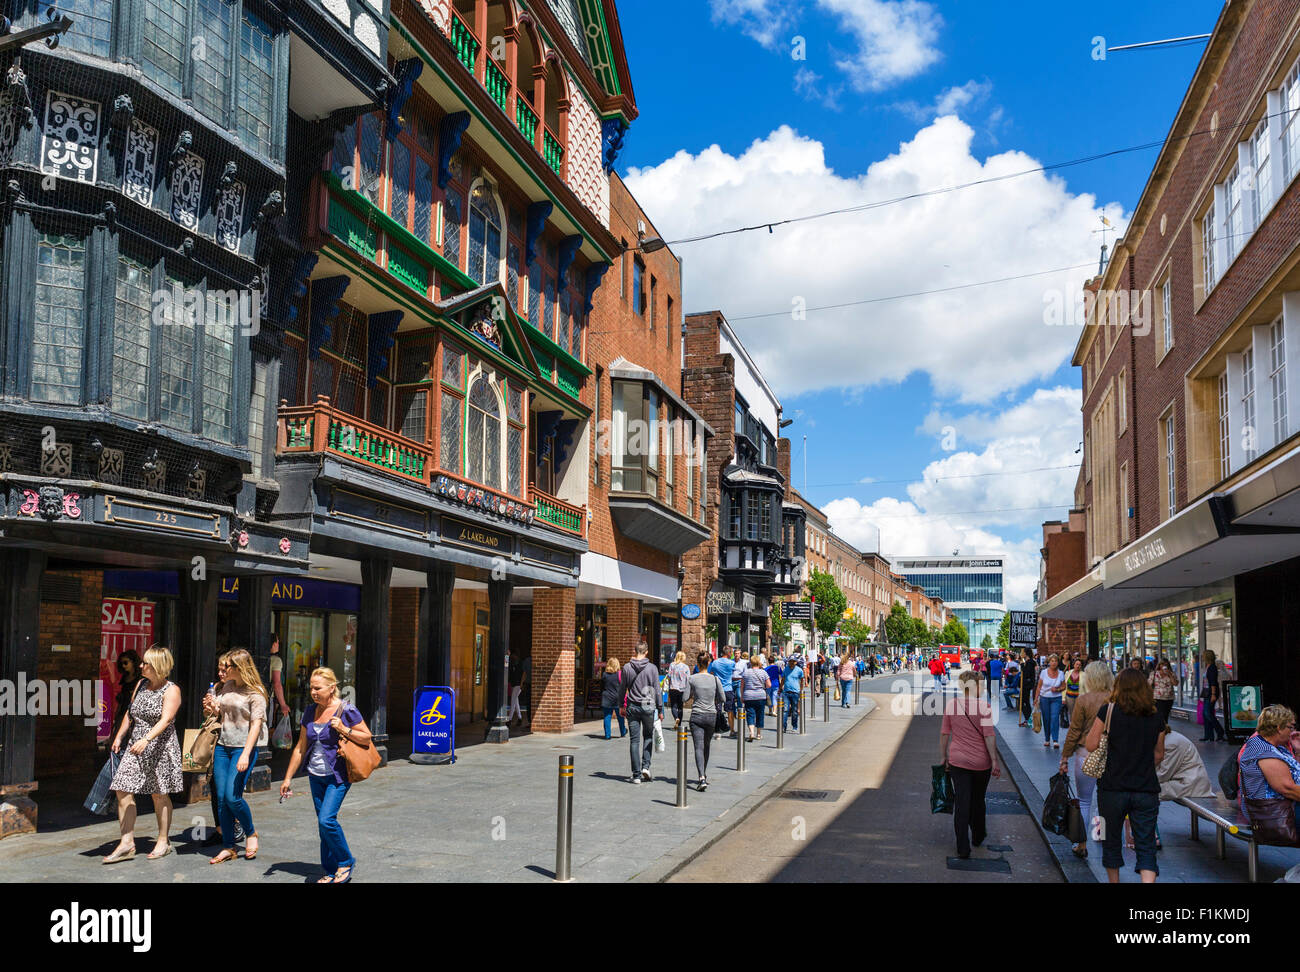 Shops on the High Street in the city centre, Exeter, Devon, England, UK - Stock Image